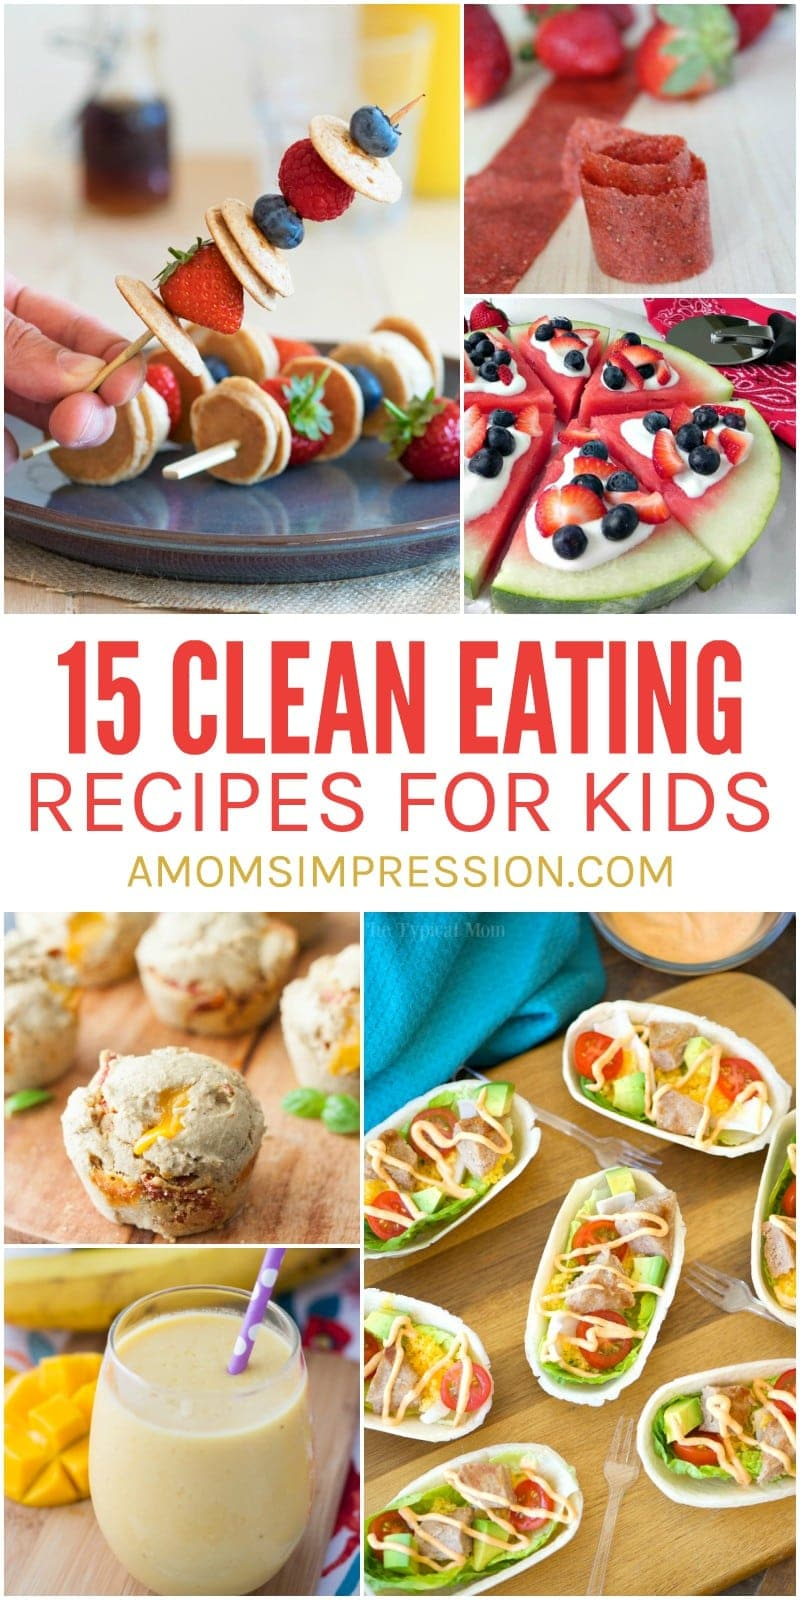 Clean Eating Recipes for Kids can be hard to find, but I gathered 15 of the best recipes that your family is going to love. My kids and I love #17 and eat it about once a week!